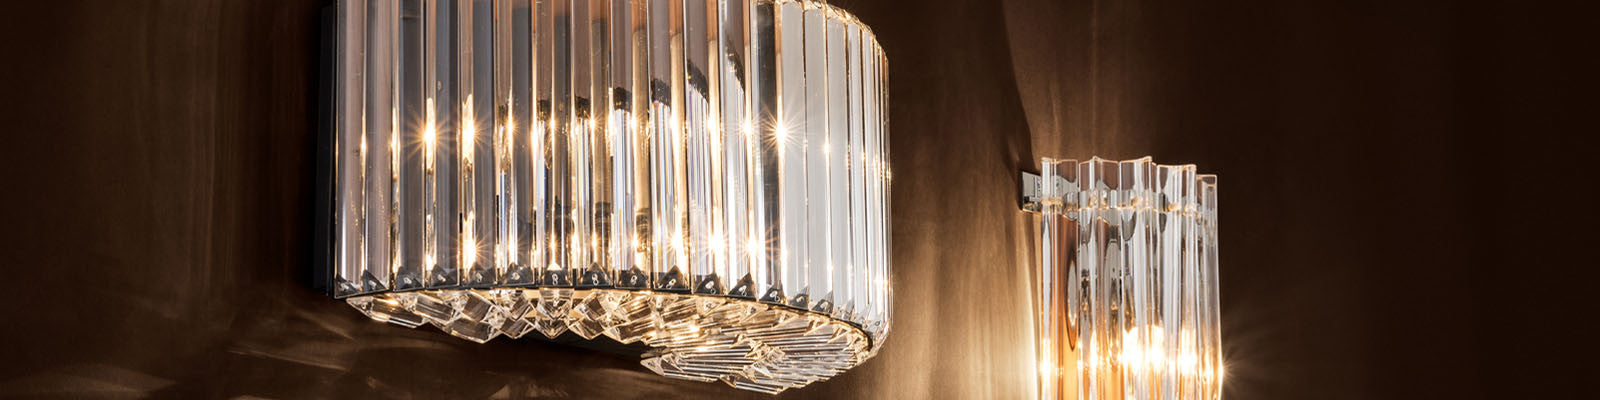 Wall Lamps | Eichholtz Lighting | OROA - Modernized Classic Furniture Online